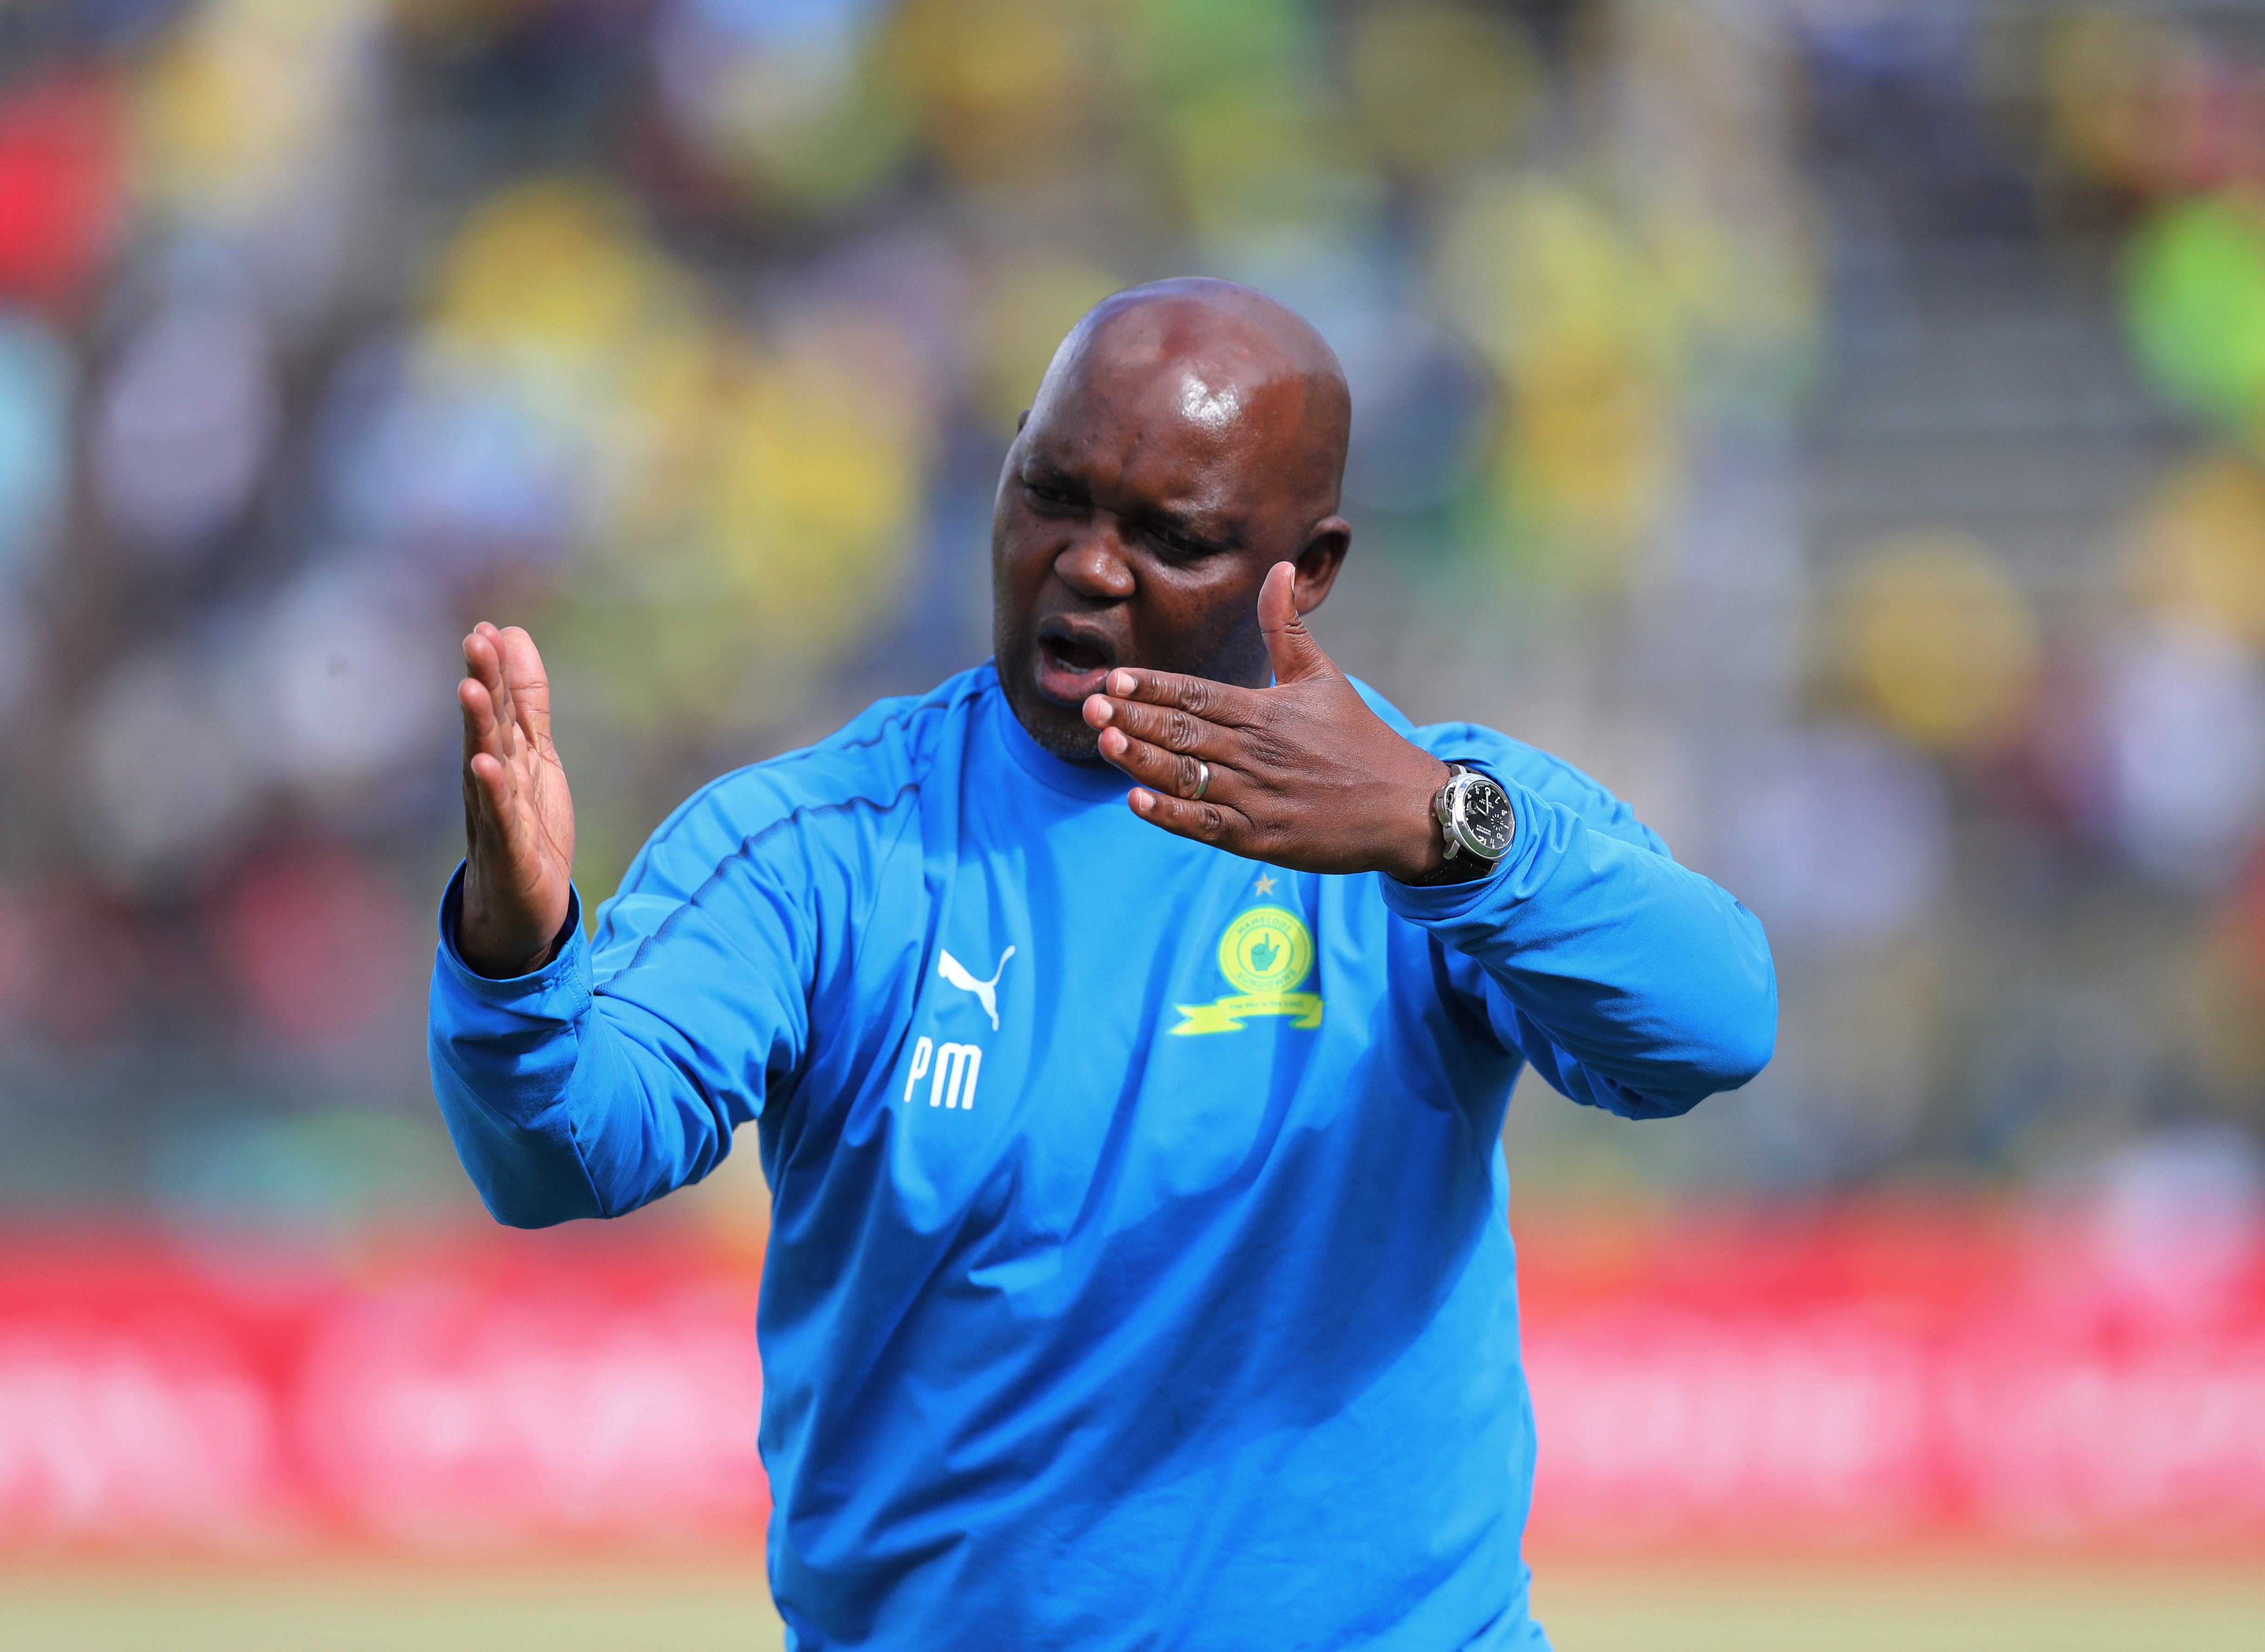 Mosimane comments on doubling-up as Bafana & Sundowns coach